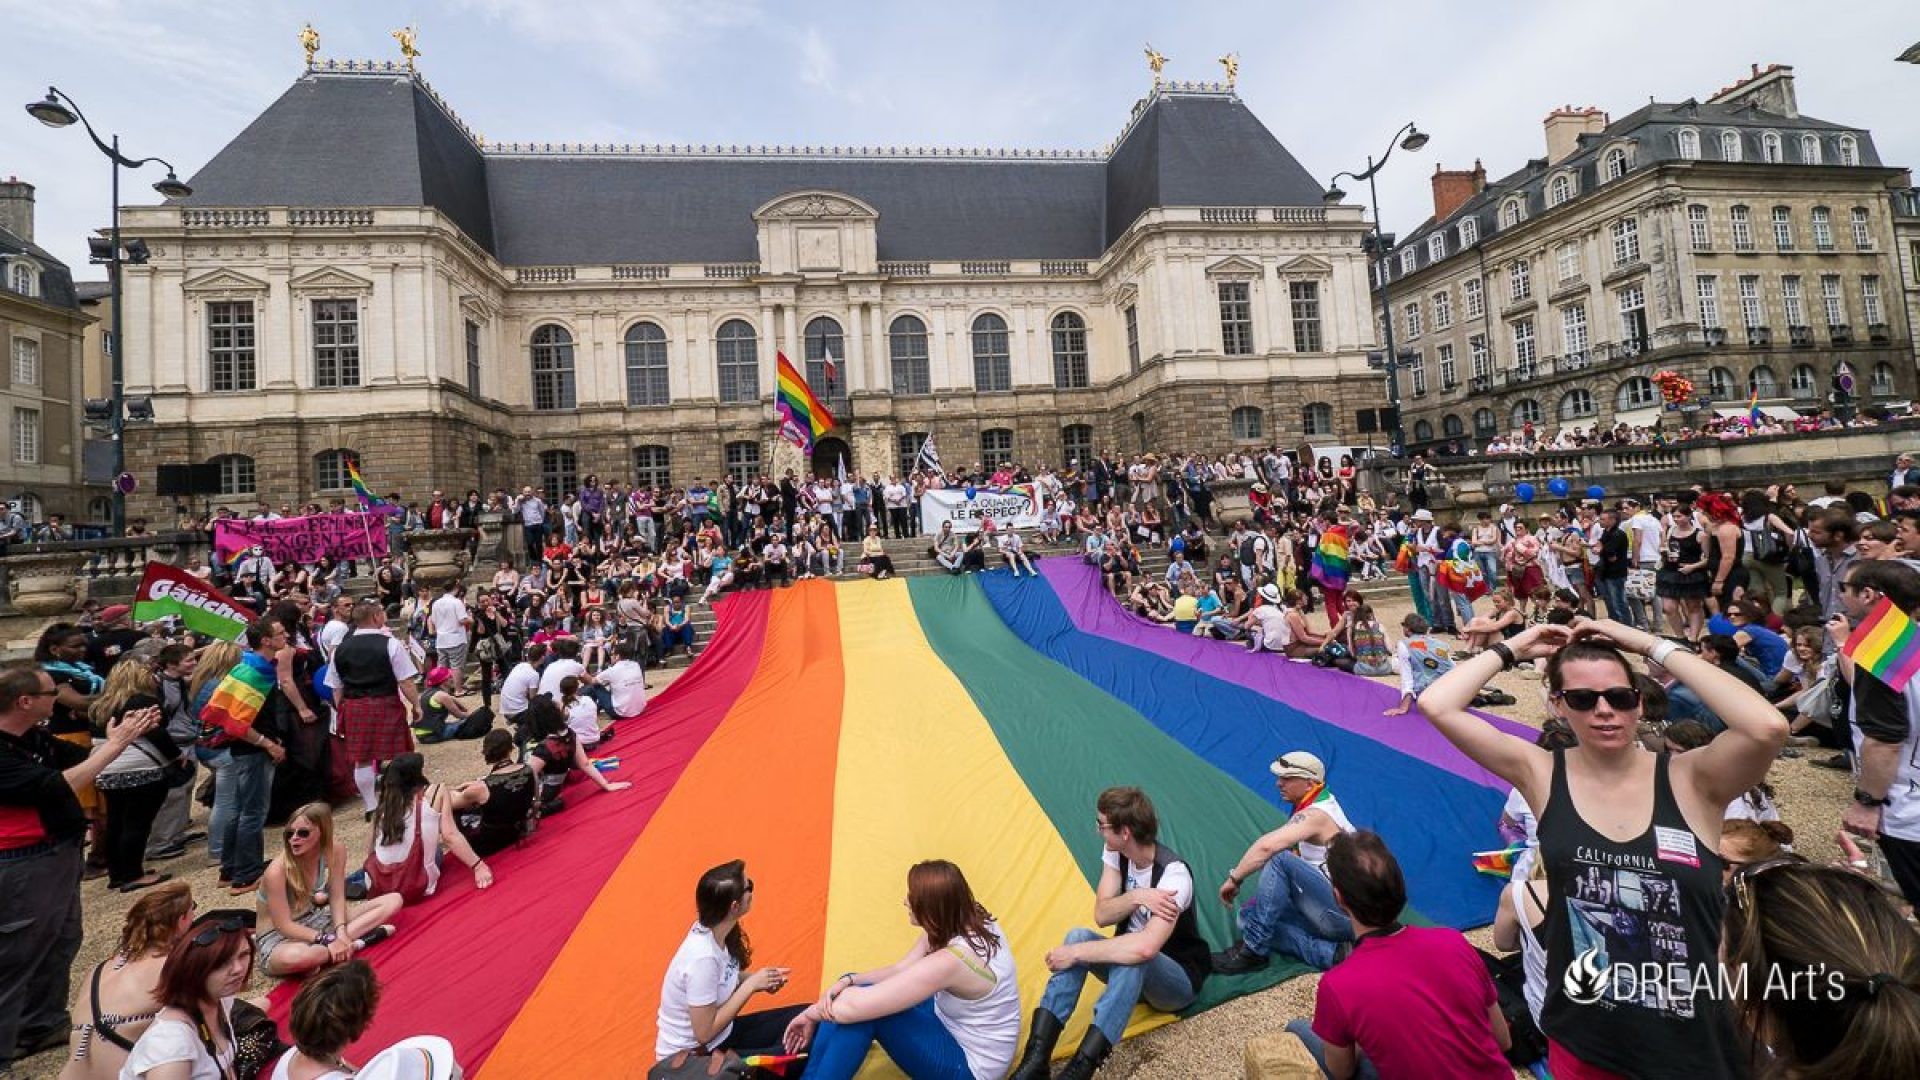 Marche de la fierté gay